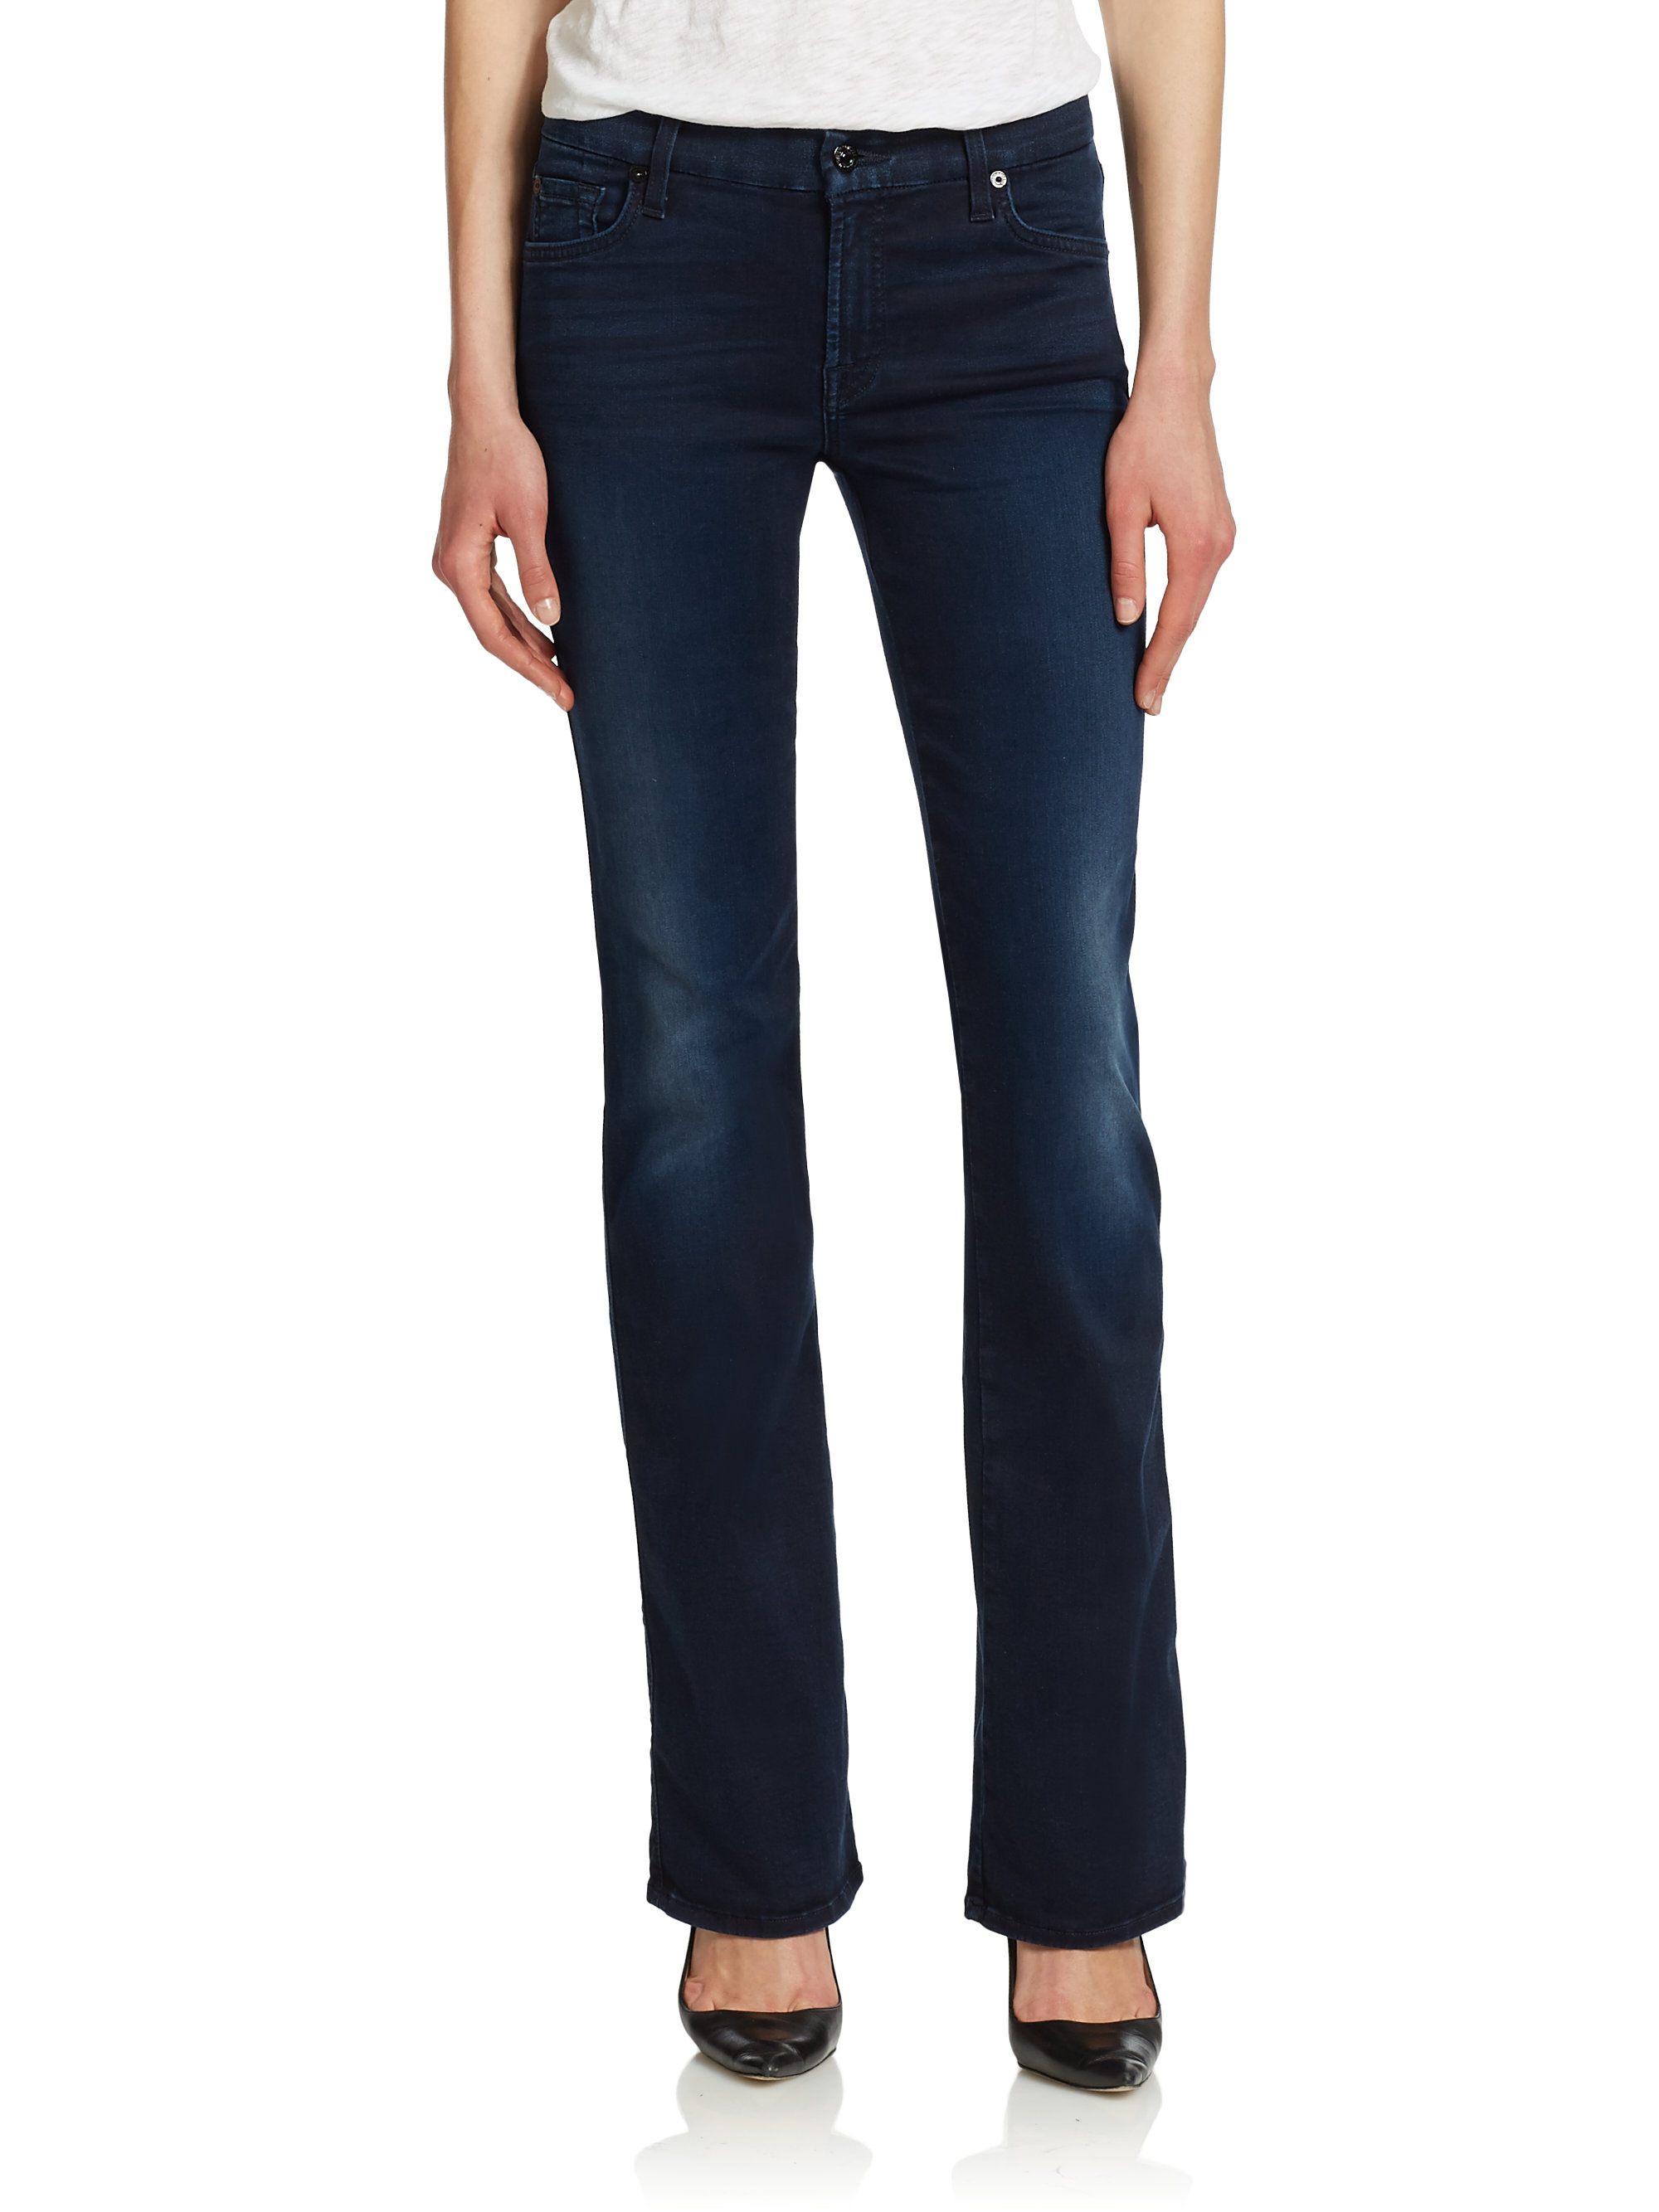 lyst 7 for all mankind the second skin kimmie bootcut jeans in blue. Black Bedroom Furniture Sets. Home Design Ideas